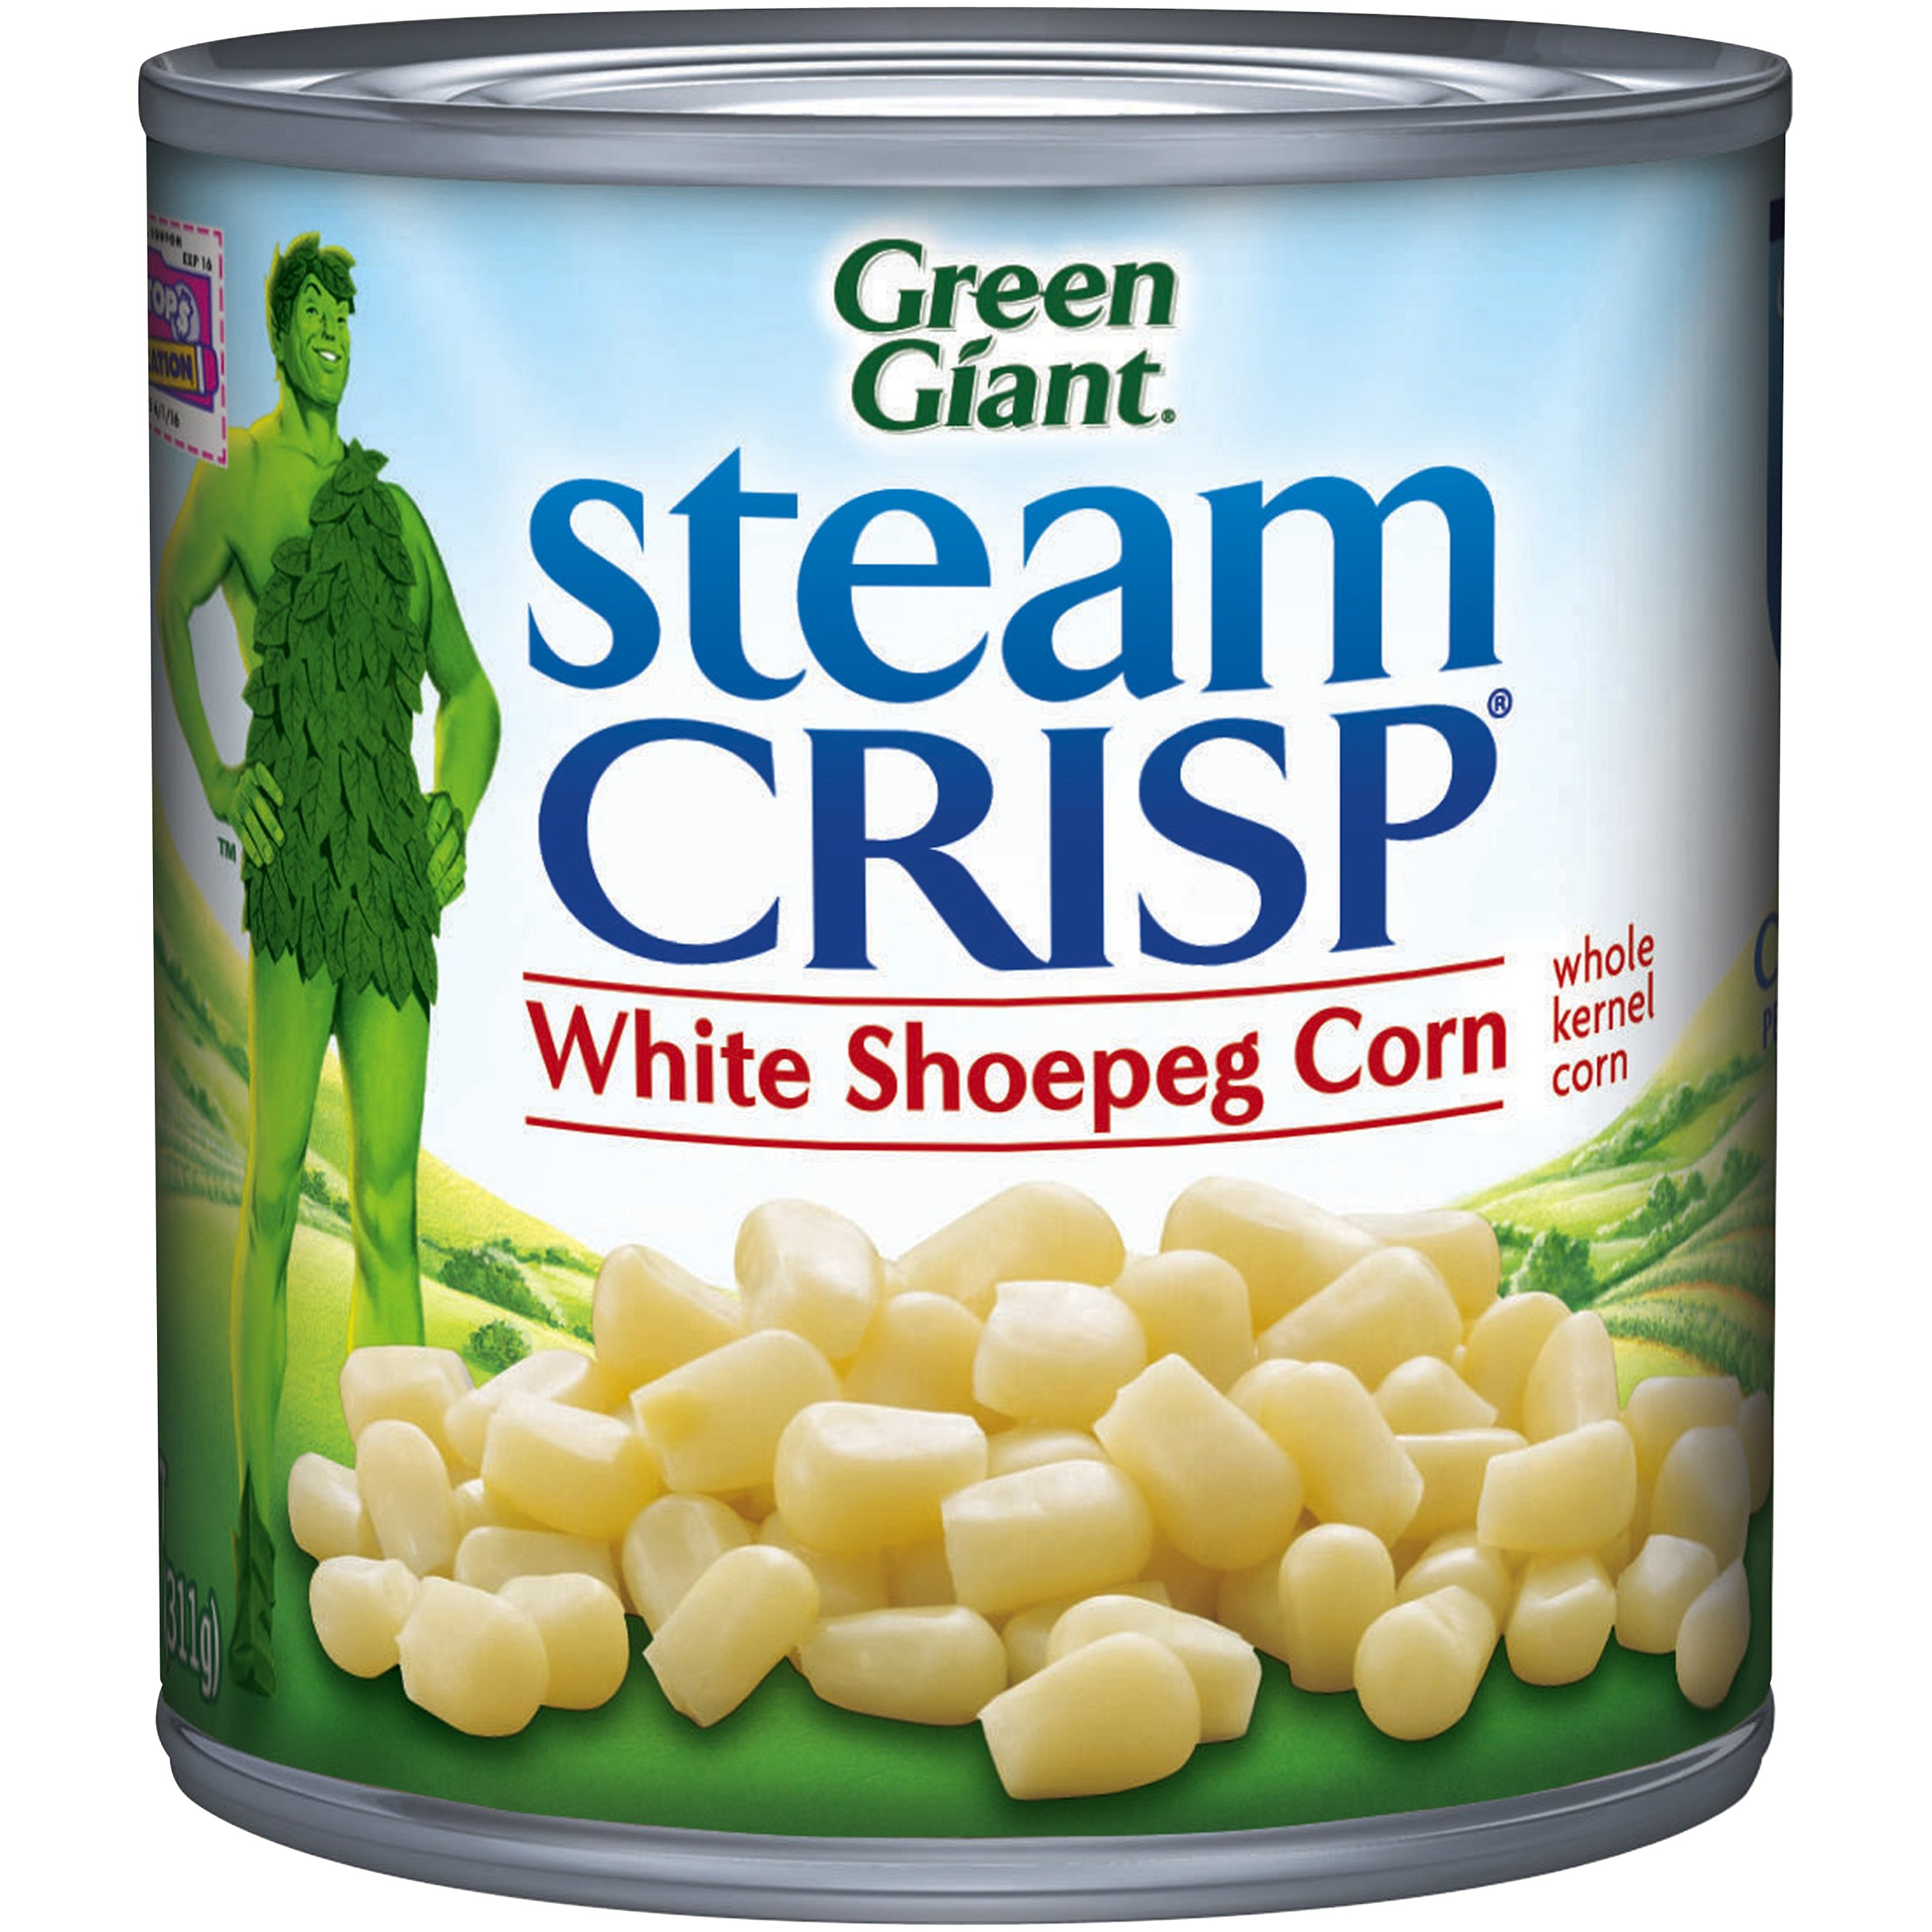 Green Giant Steam Crisp White Shoepeg Whole Kernel Corn, 11 oz